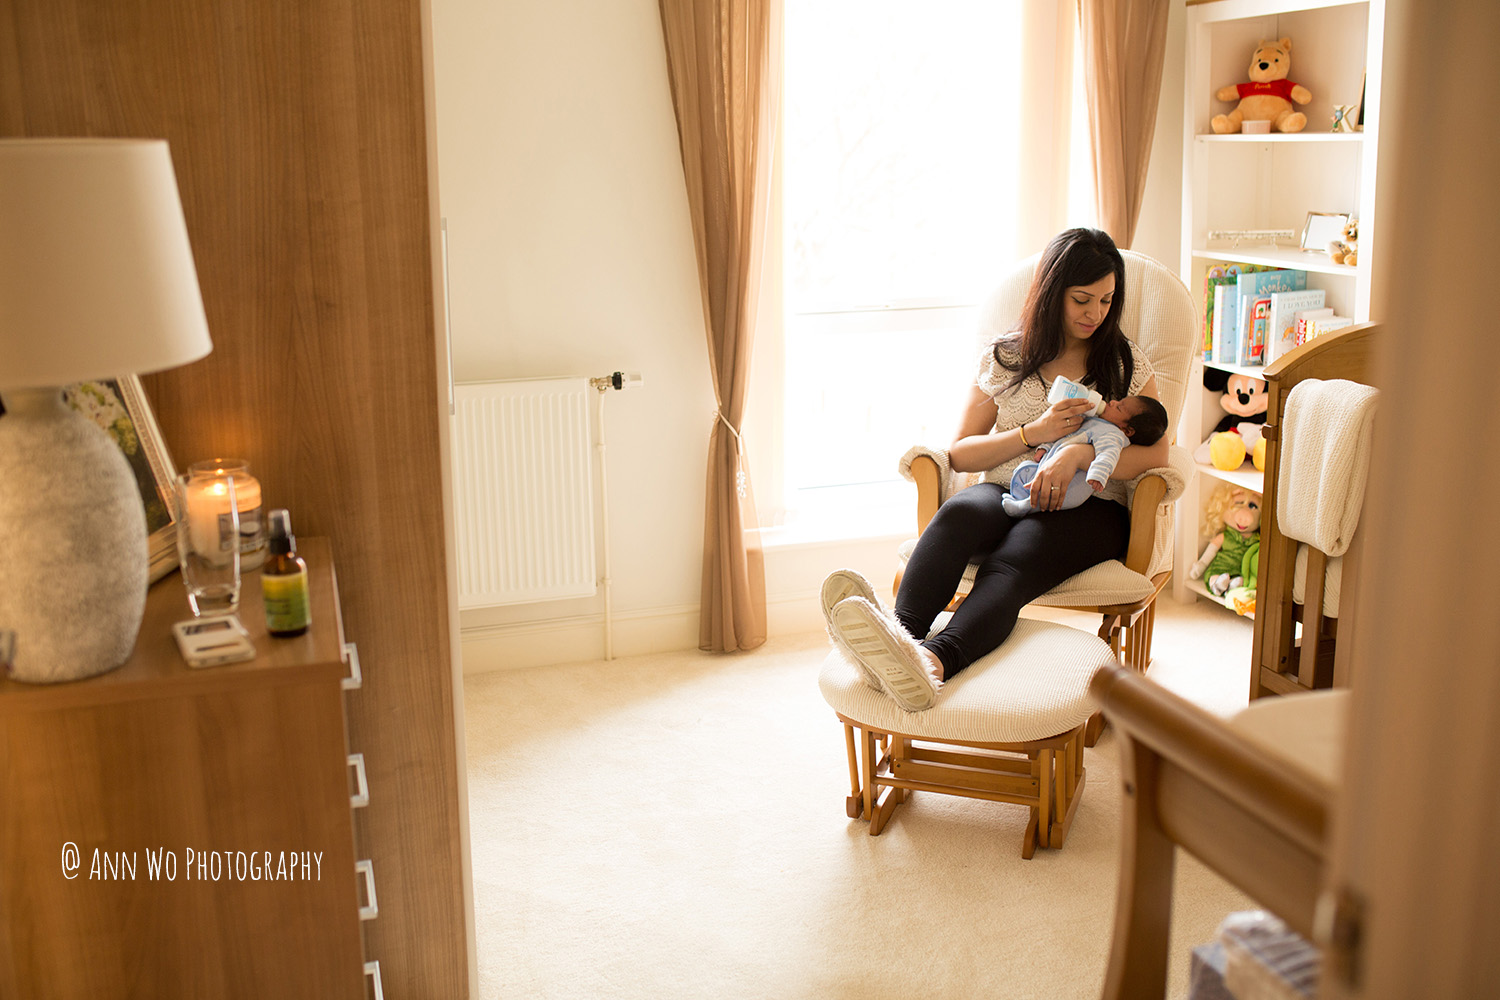 022-newborn-photography-session-at-home-ann-wo-london-22.JPG